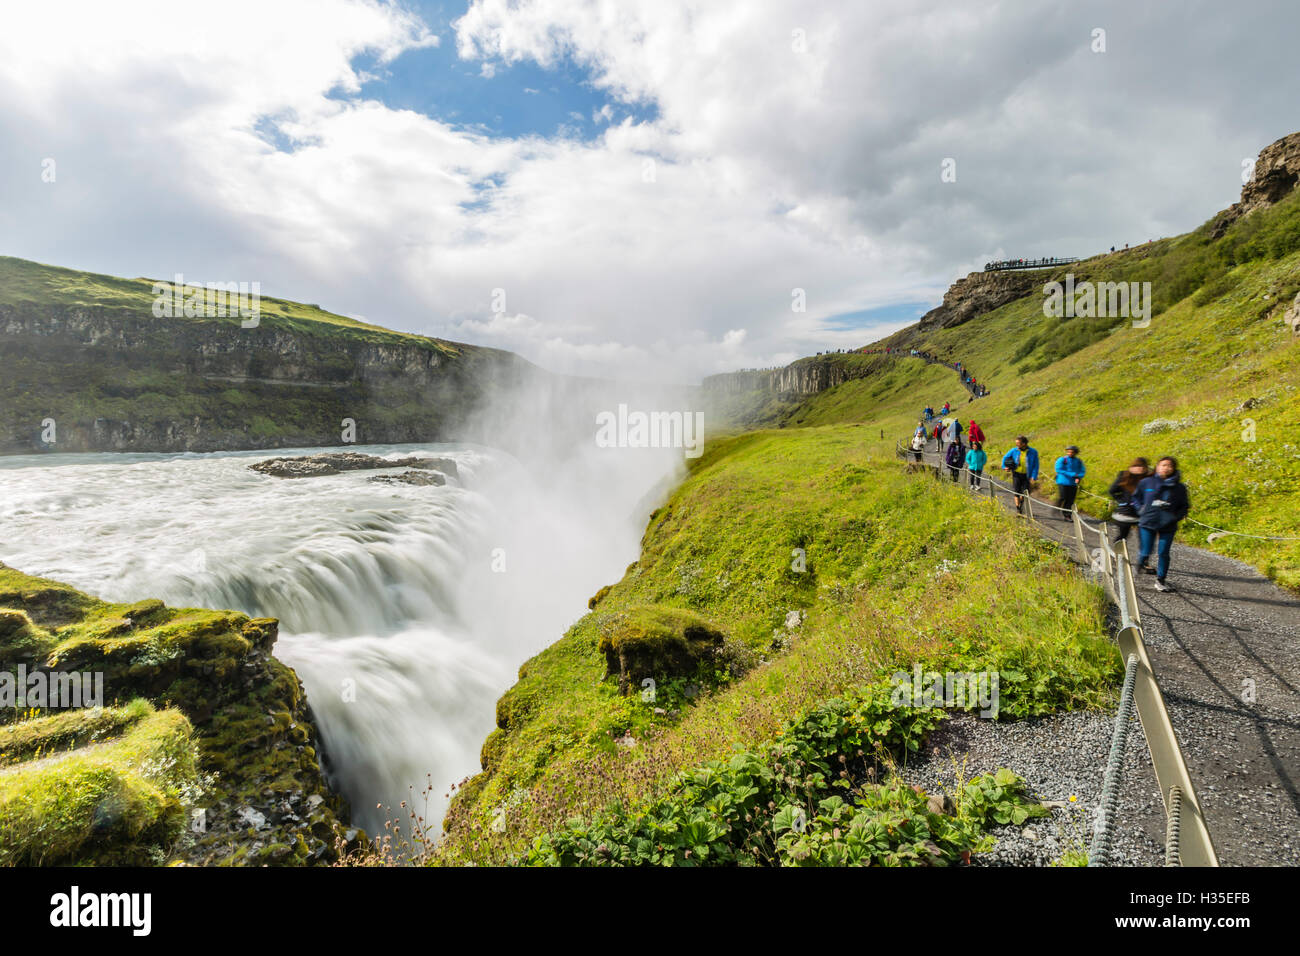 Tourists visiting Gullfoss (Golden Falls), a waterfall located in the canyon of the Hvita River in southwest Iceland - Stock Image